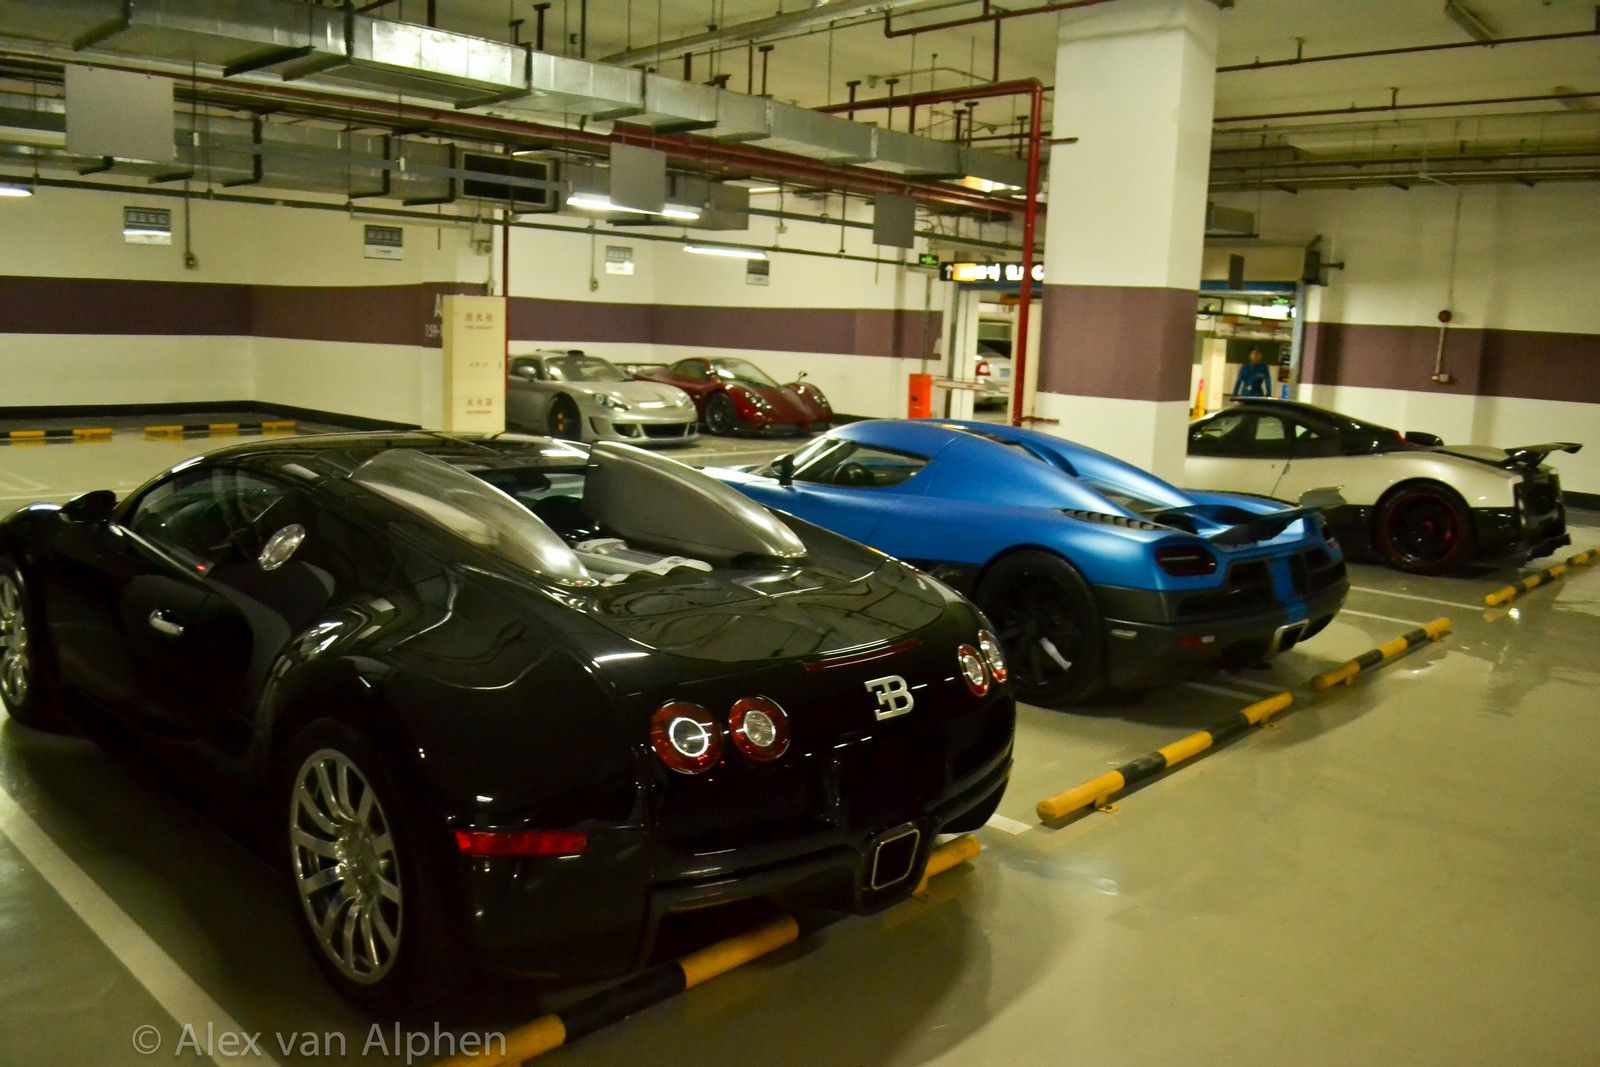 Local Garage Chinese Supercar Dealership Fff Automobile 003 Supercar Dealership Super Cars Garage Pictures